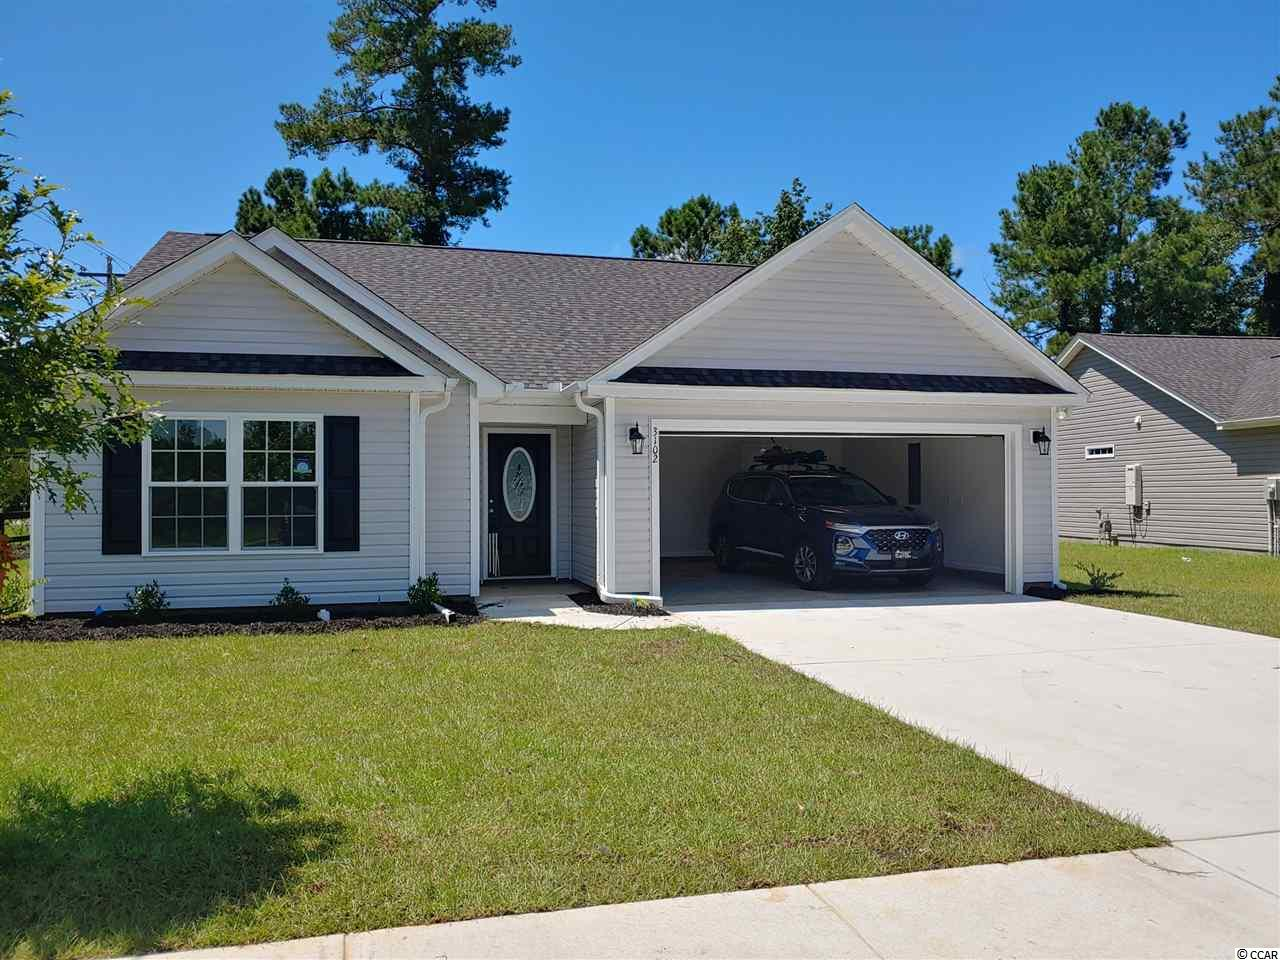 "Beautiful Sewee Plan in The New Woodland Lakes Community in The City of Conway, SC. Plan offers all of the right features and benefits.  Features include but are not limited to 3 Bedrooms 2 Baths, 2 Car Garage, ,Great Open Floor Plan, Vaulted and Trayed Ceilings, 2 Ceiling Fans, Plant Shelf, and Vinyl Windows, & Covered Rear Porch. Plans also include Separate 10x14 Concrete Patio, Sidewalks to Front Entry and Driveway. All of the Homes in Woodland Lakes Community come standard with the luxury of a Tankless Hot Water Heater, Gas Heat, Gas Stove and Oven. These new Homes also include 36"" Profiled Kitchen Cabinets with Top Molding Trim and Door Knobs, Stainless Steel Appliances, Kitchen Pantry, Linen Closet, Completely Trimmed and Painted Garage with Drop Down Storage Access, which is Floored for your convenience, and Electronic Garage Door with Remote Openers. ""Low E"" Energy Efficient Windows, Upgraded Insulation Package, Landscaped, Sodded Yard, and so much more.  All of the homes in Woodland Lakes are built with a ""Maintenance Free"" Lifestyle in mind. Woodland Lakes is South Conway's Newest Community conveniently located near Shopping, Medical Offices and Hospitals, Restaurants,  and Schools. The Builder DOES ALLOW CUSTOM HOME CHANGES ON PRESALE HOMES!  Call or visit us online today and find out why This Builder is The Areas Premier Local Builder! Other Floor Plans, Inventory Homes and Custom Plans are Available. Call the Onsite Model for New Homes Availability and to make an Appointment to see Woodland Lakes."